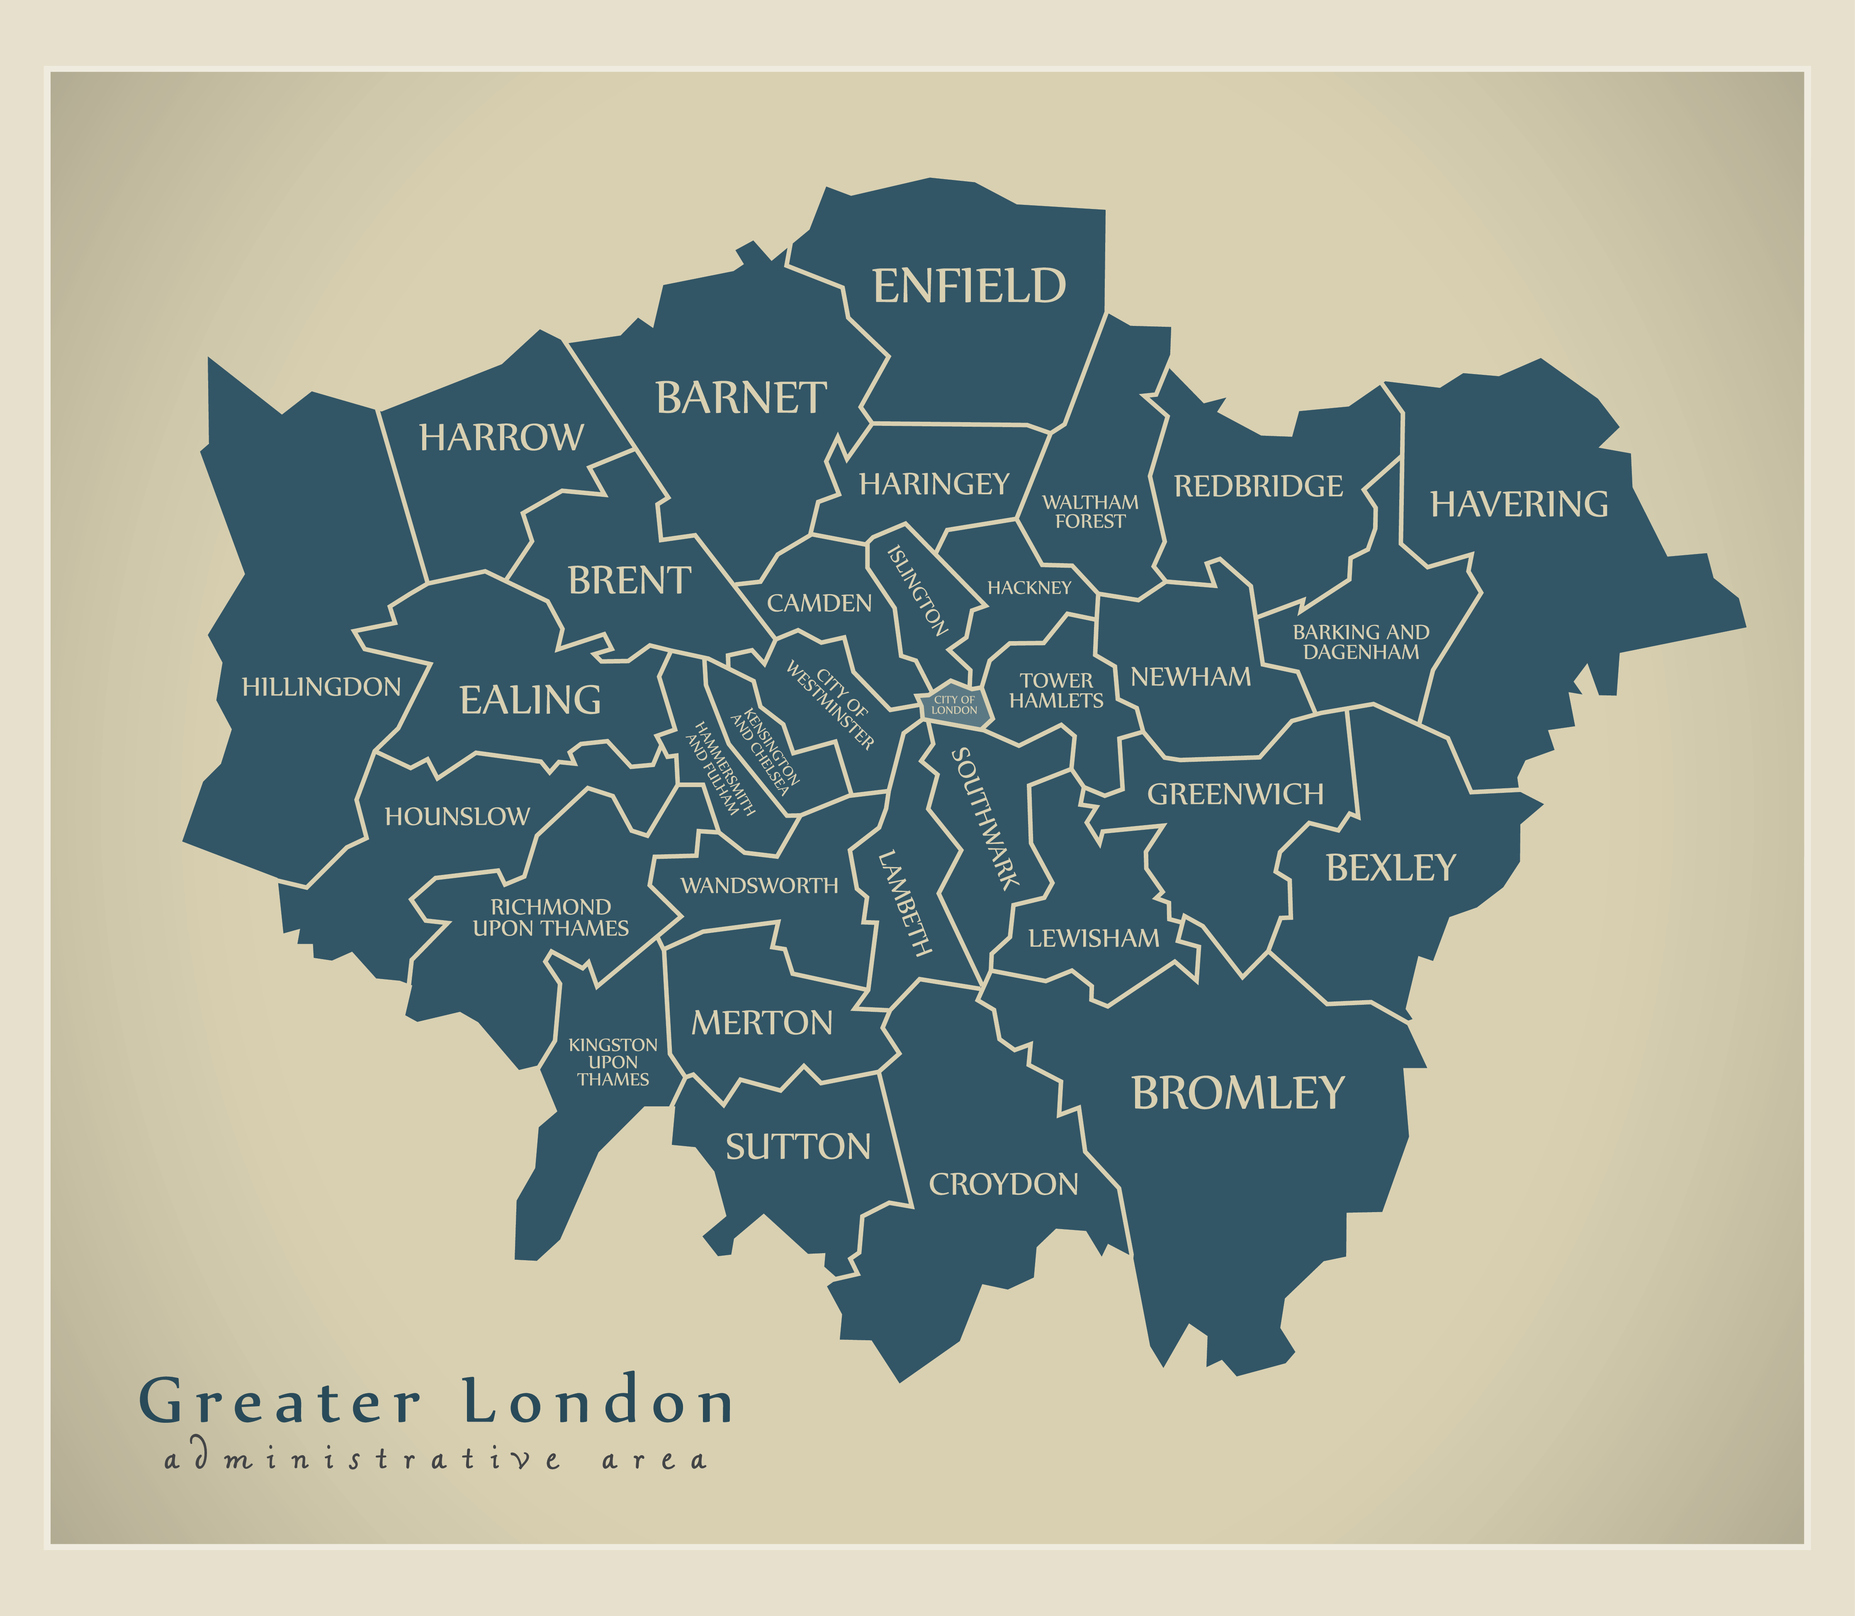 Districts Of London Map.Modern Map Greater London Labelled Districts Administrative Area